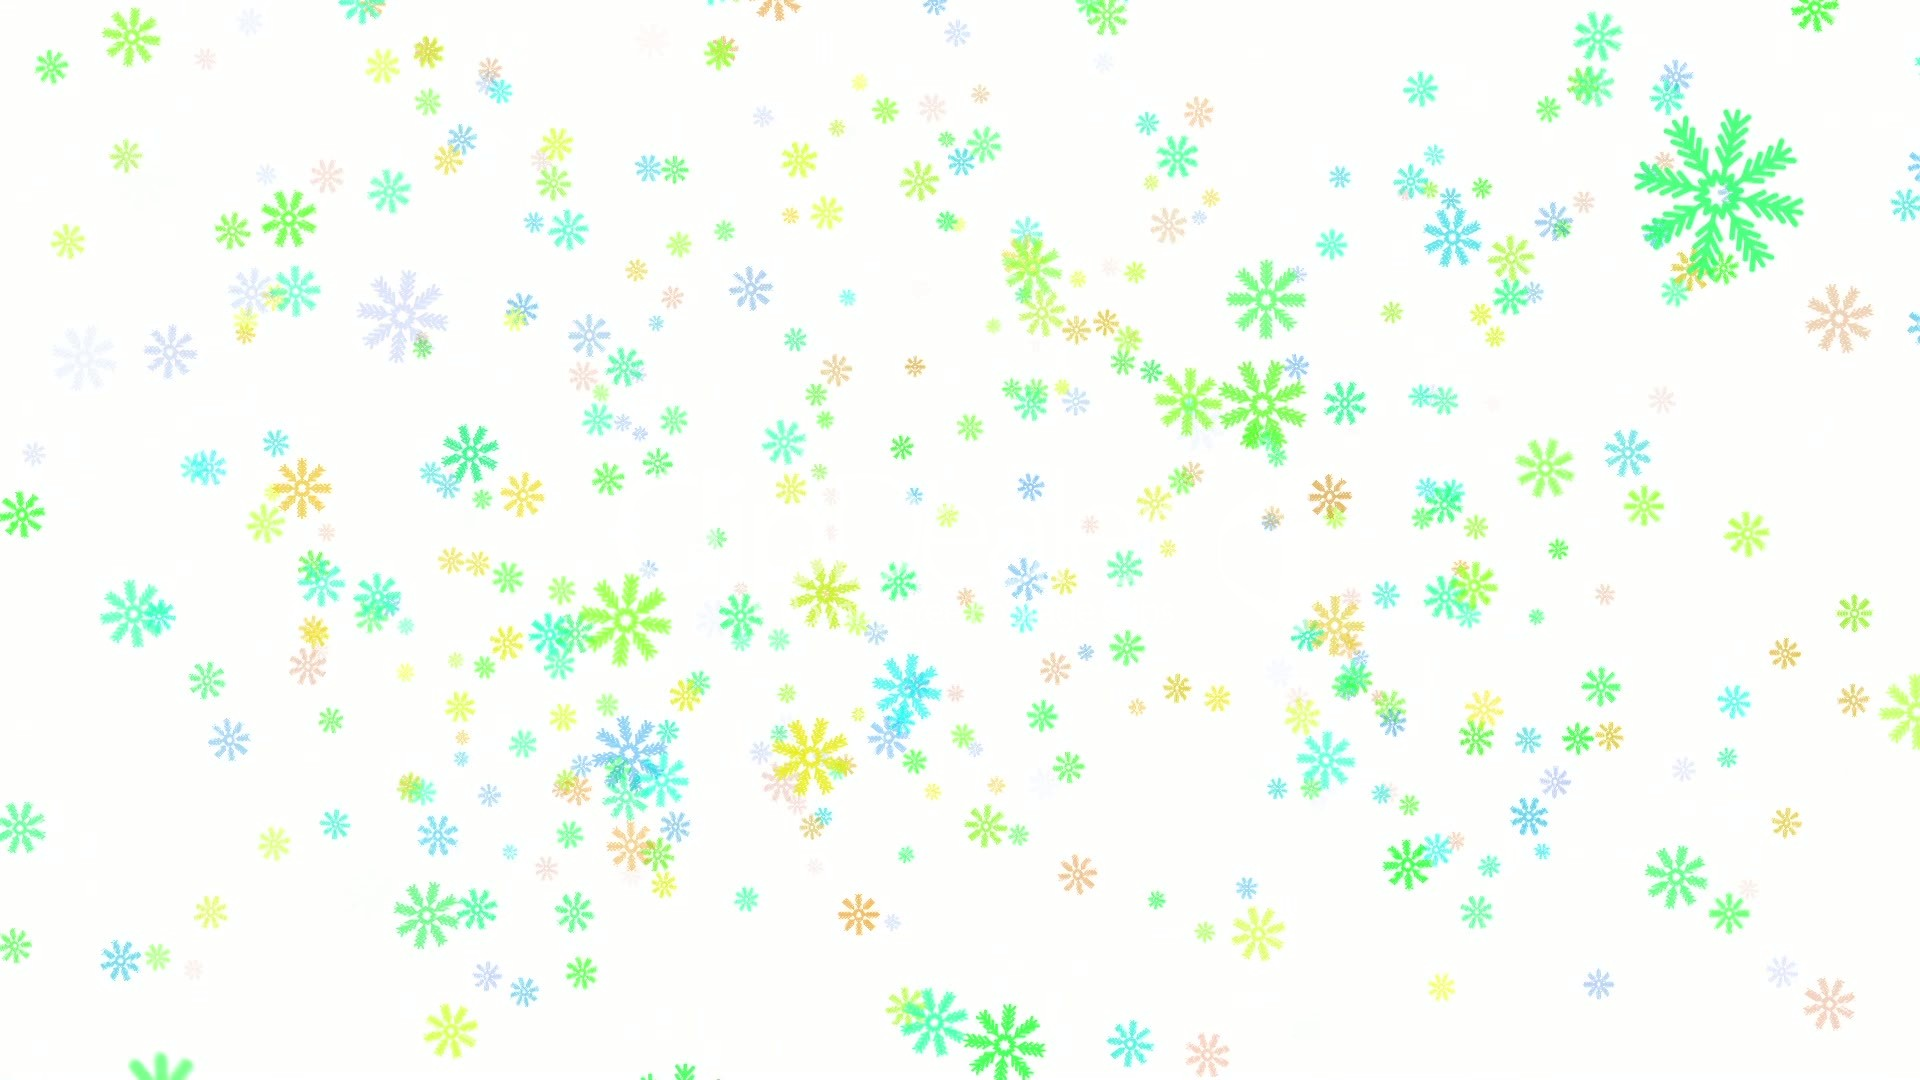 1920x1080 Snow On White Background, Colorful Snowflakes, Loop Royalty Free